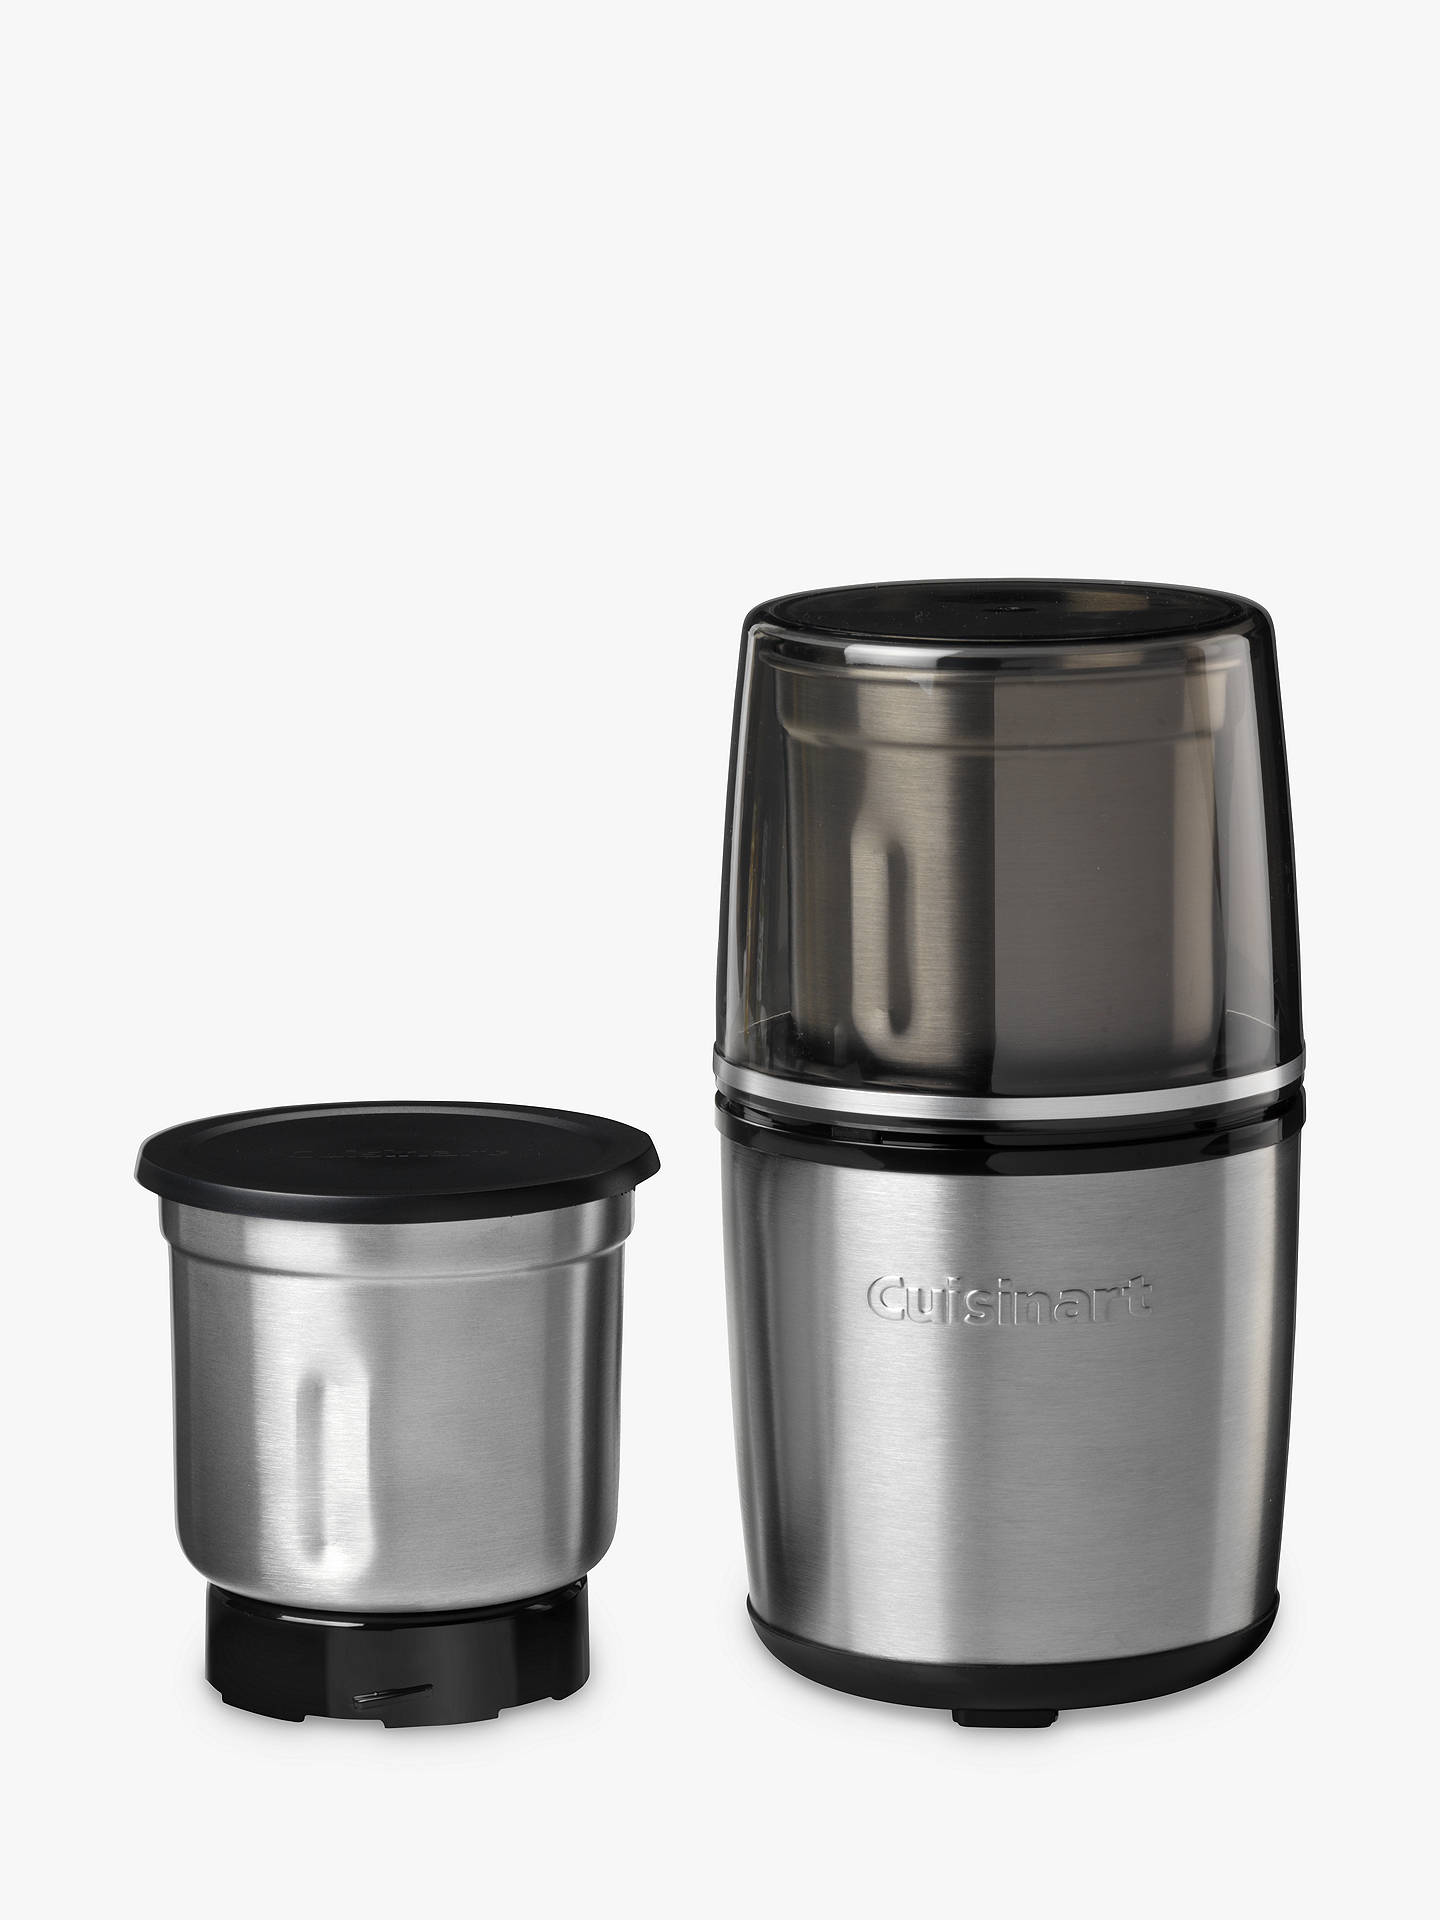 BuyCuisinart SG20 Electric Spice and Nut Grinder Online at johnlewis.com